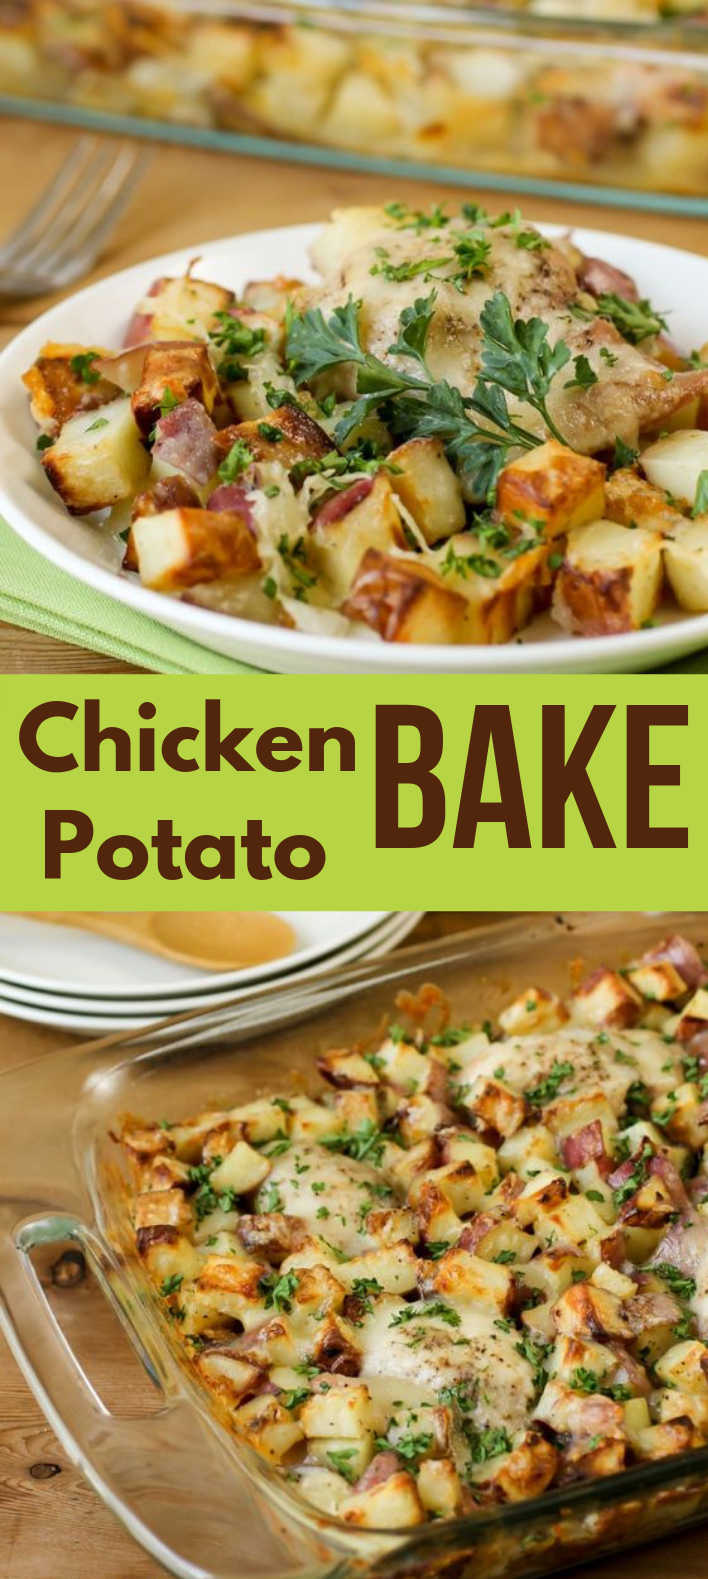 CHICKEN POTATO BAKE #Chicken #Potato